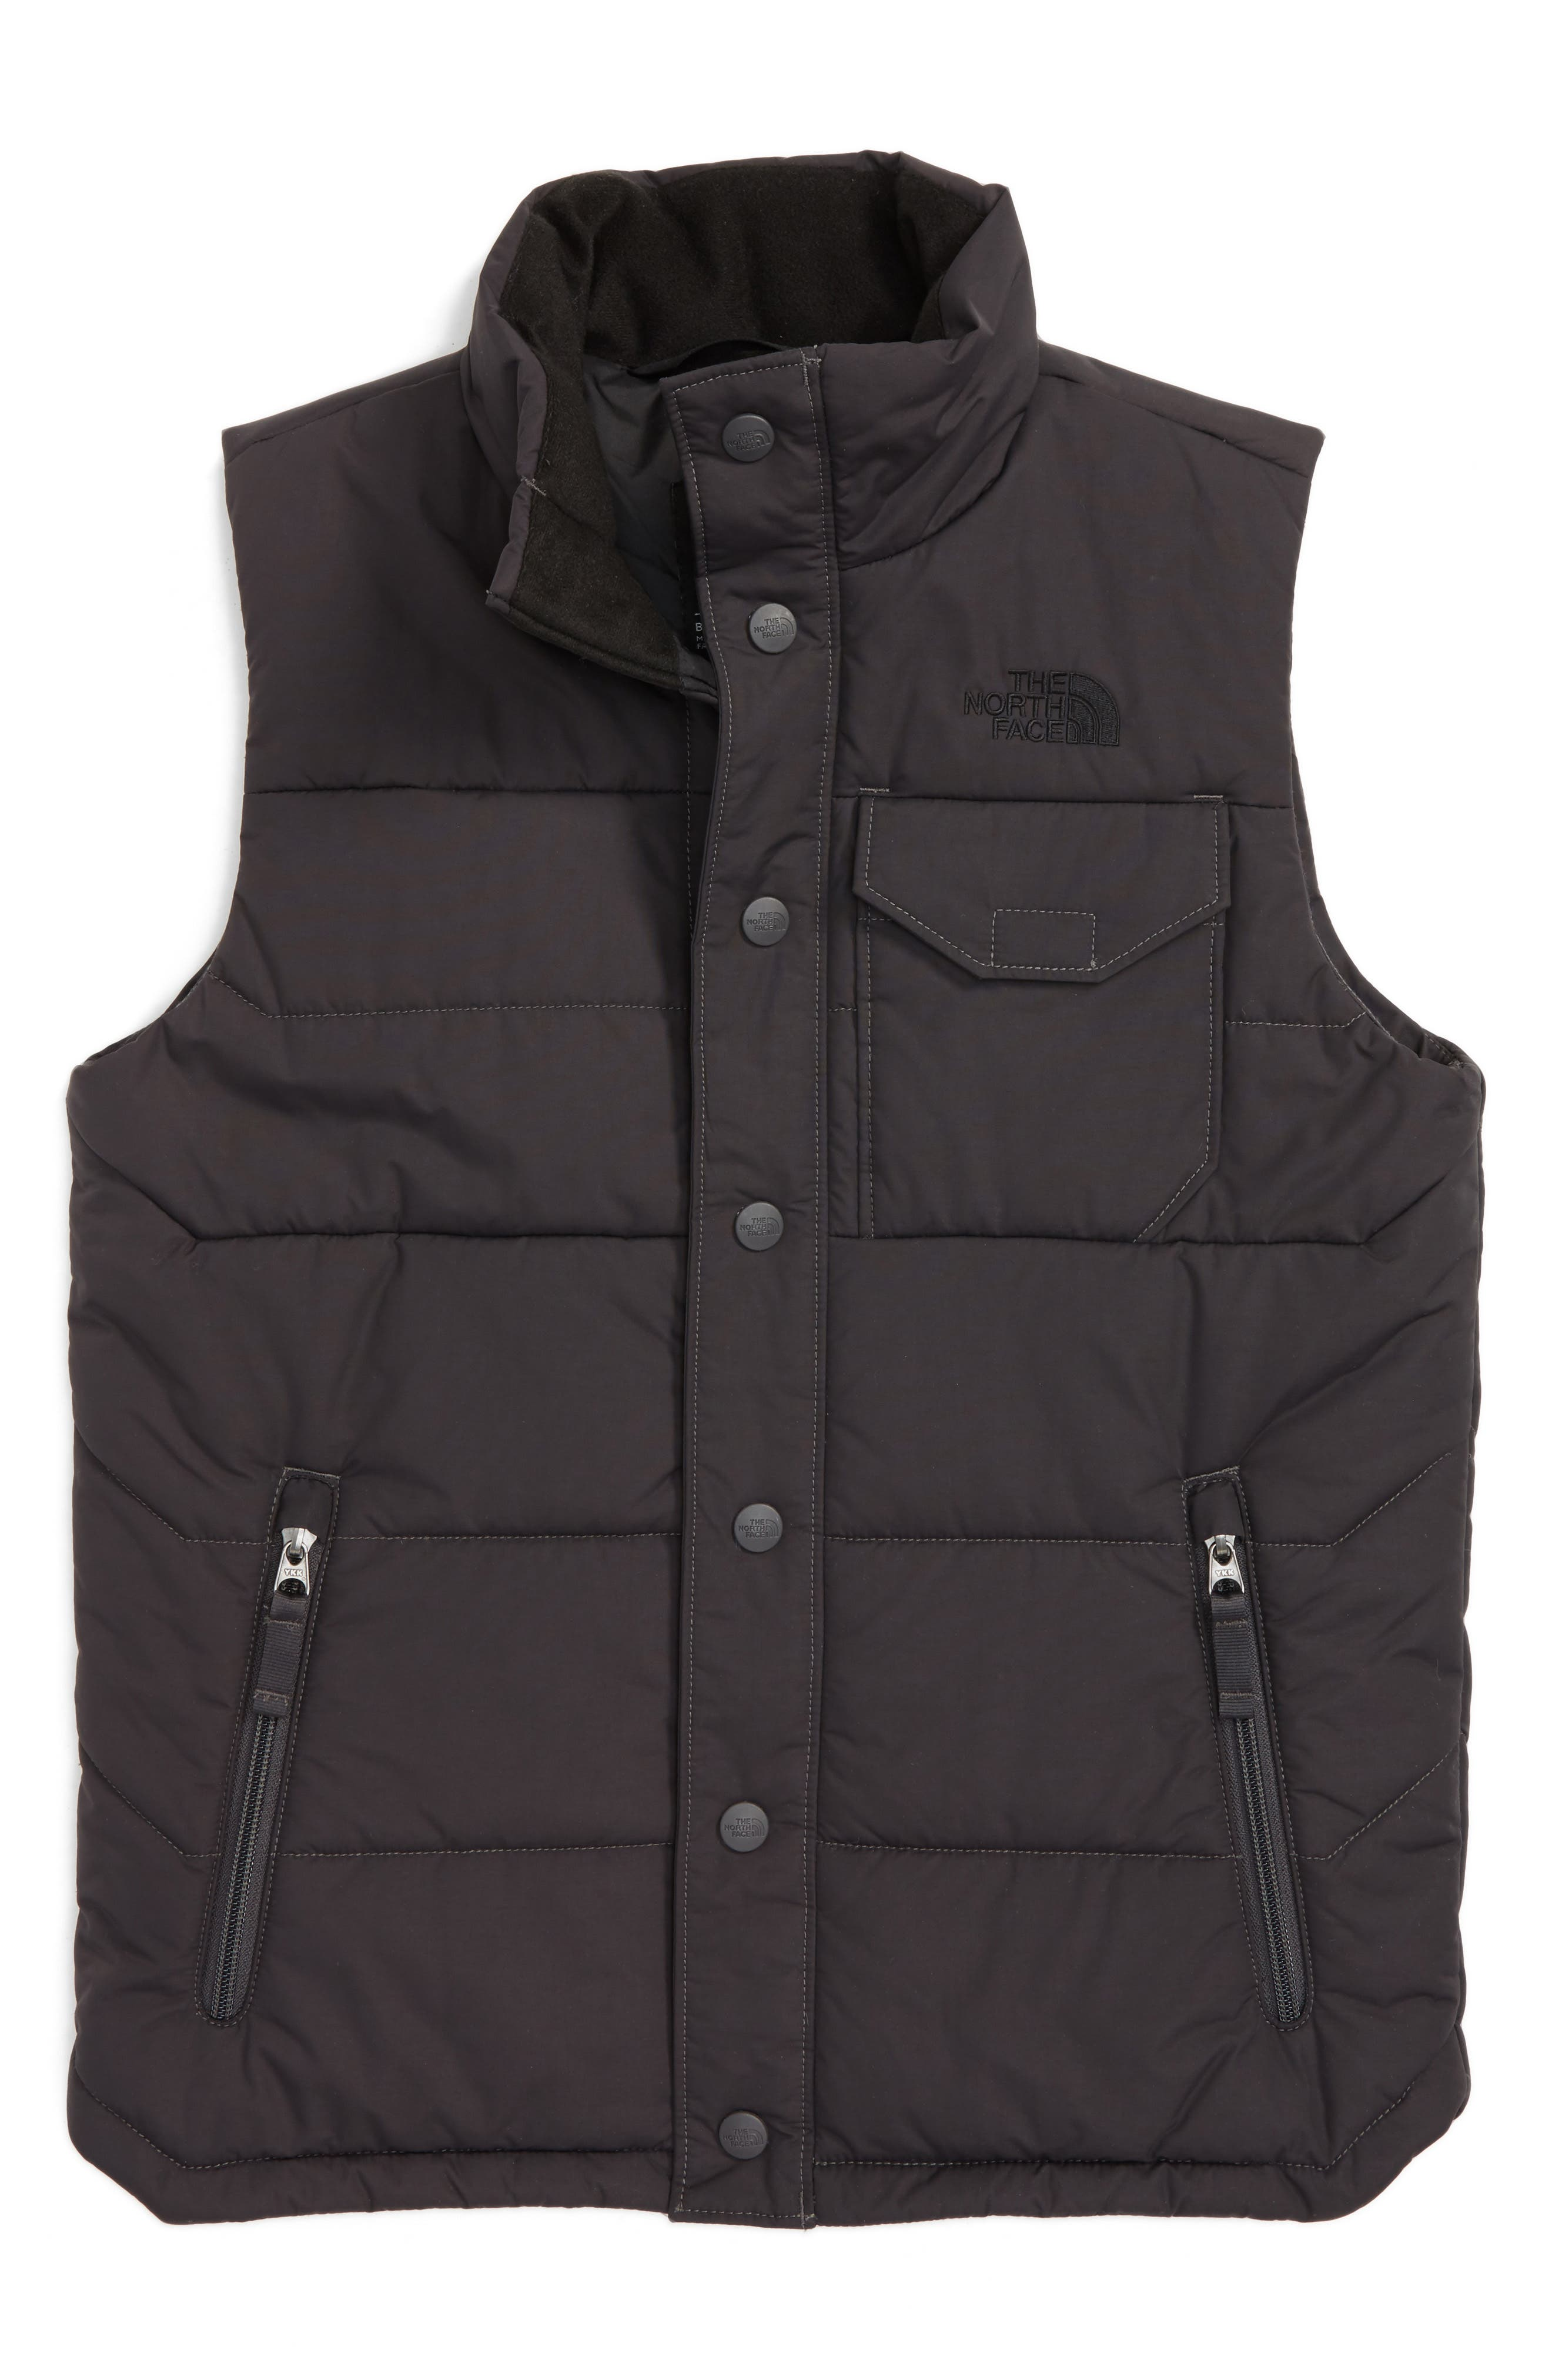 Alternate Image 1 Selected - The North Face Patrick's Point Quilted Down Vest (Toddler Boys, Little Boys & Big Boys)